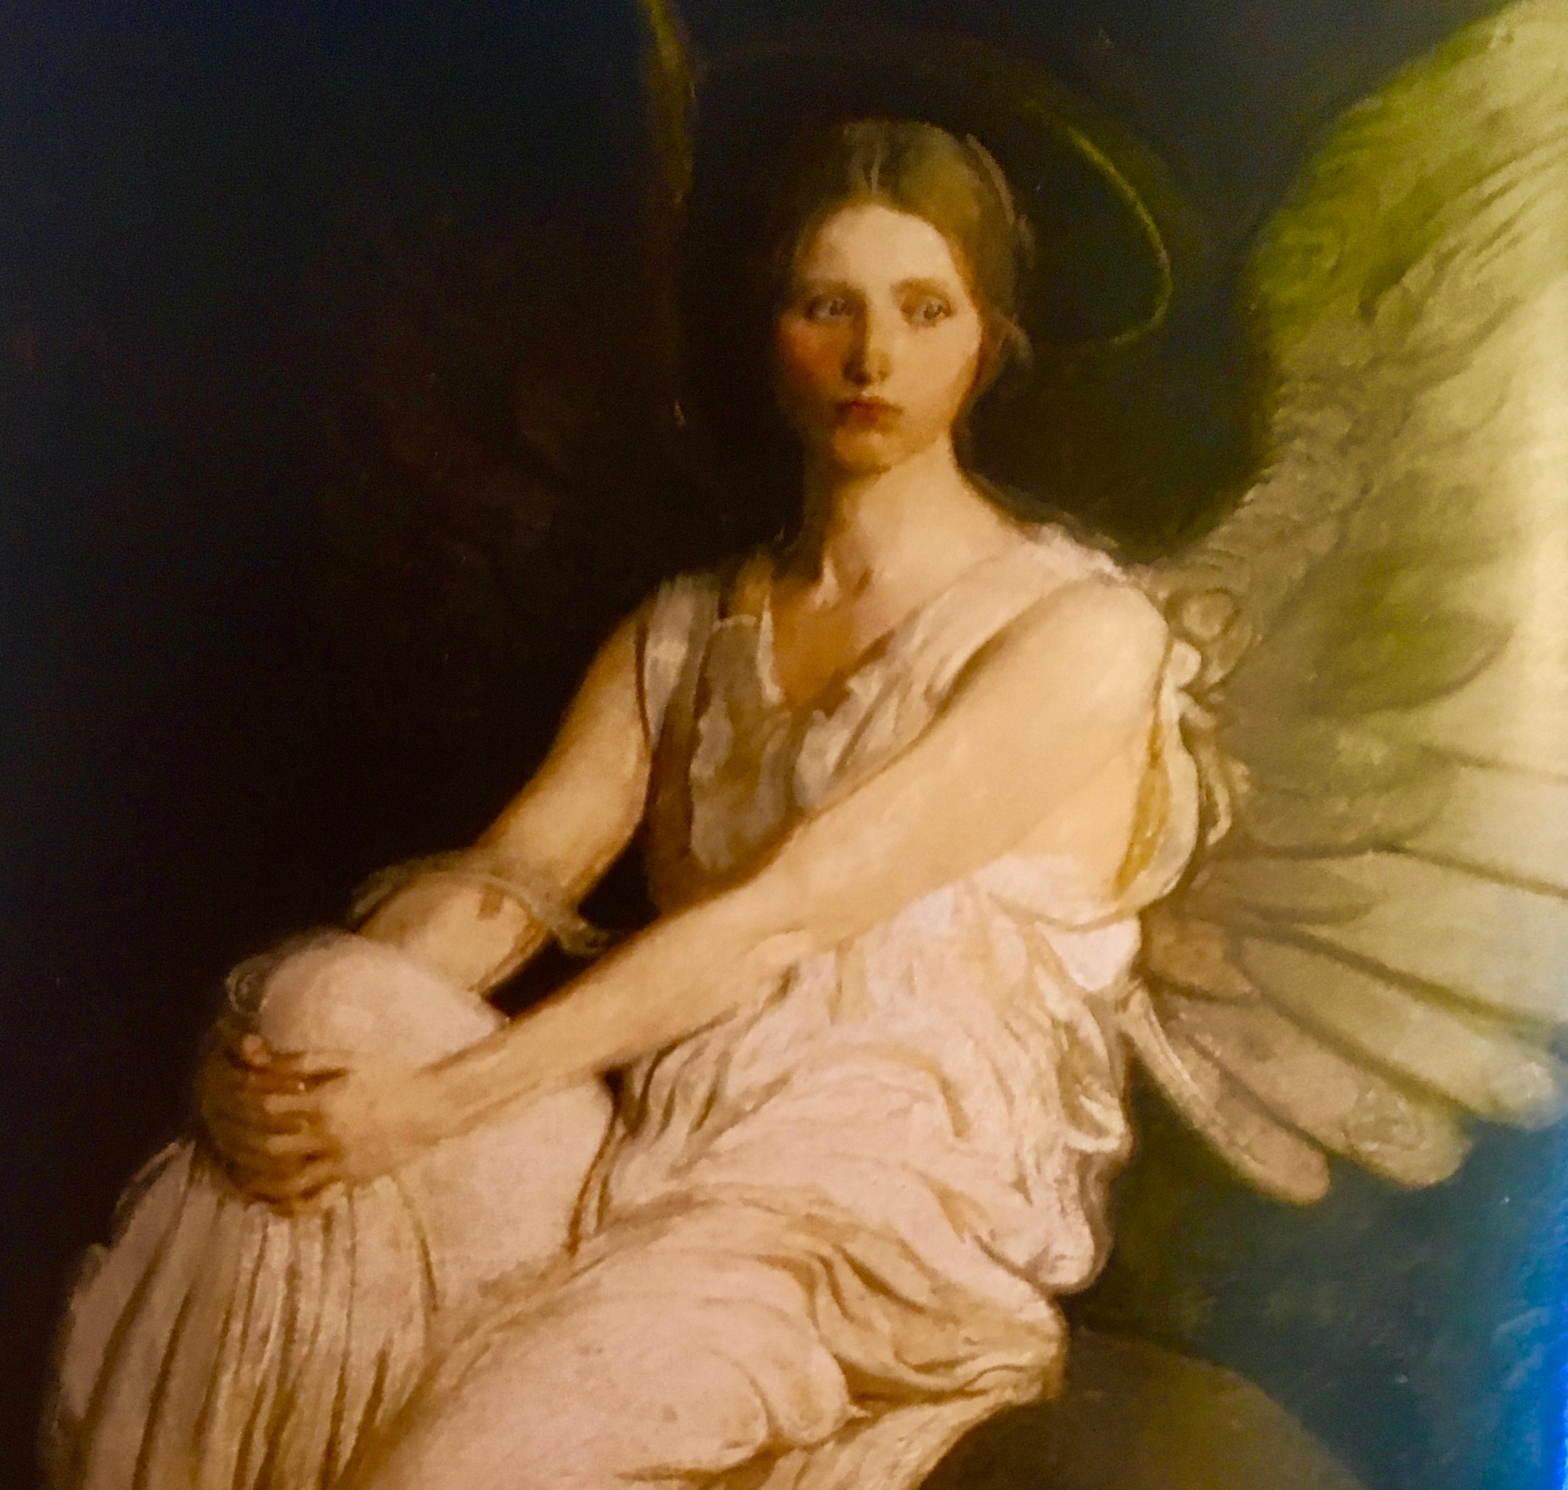 image of an angel in white robes